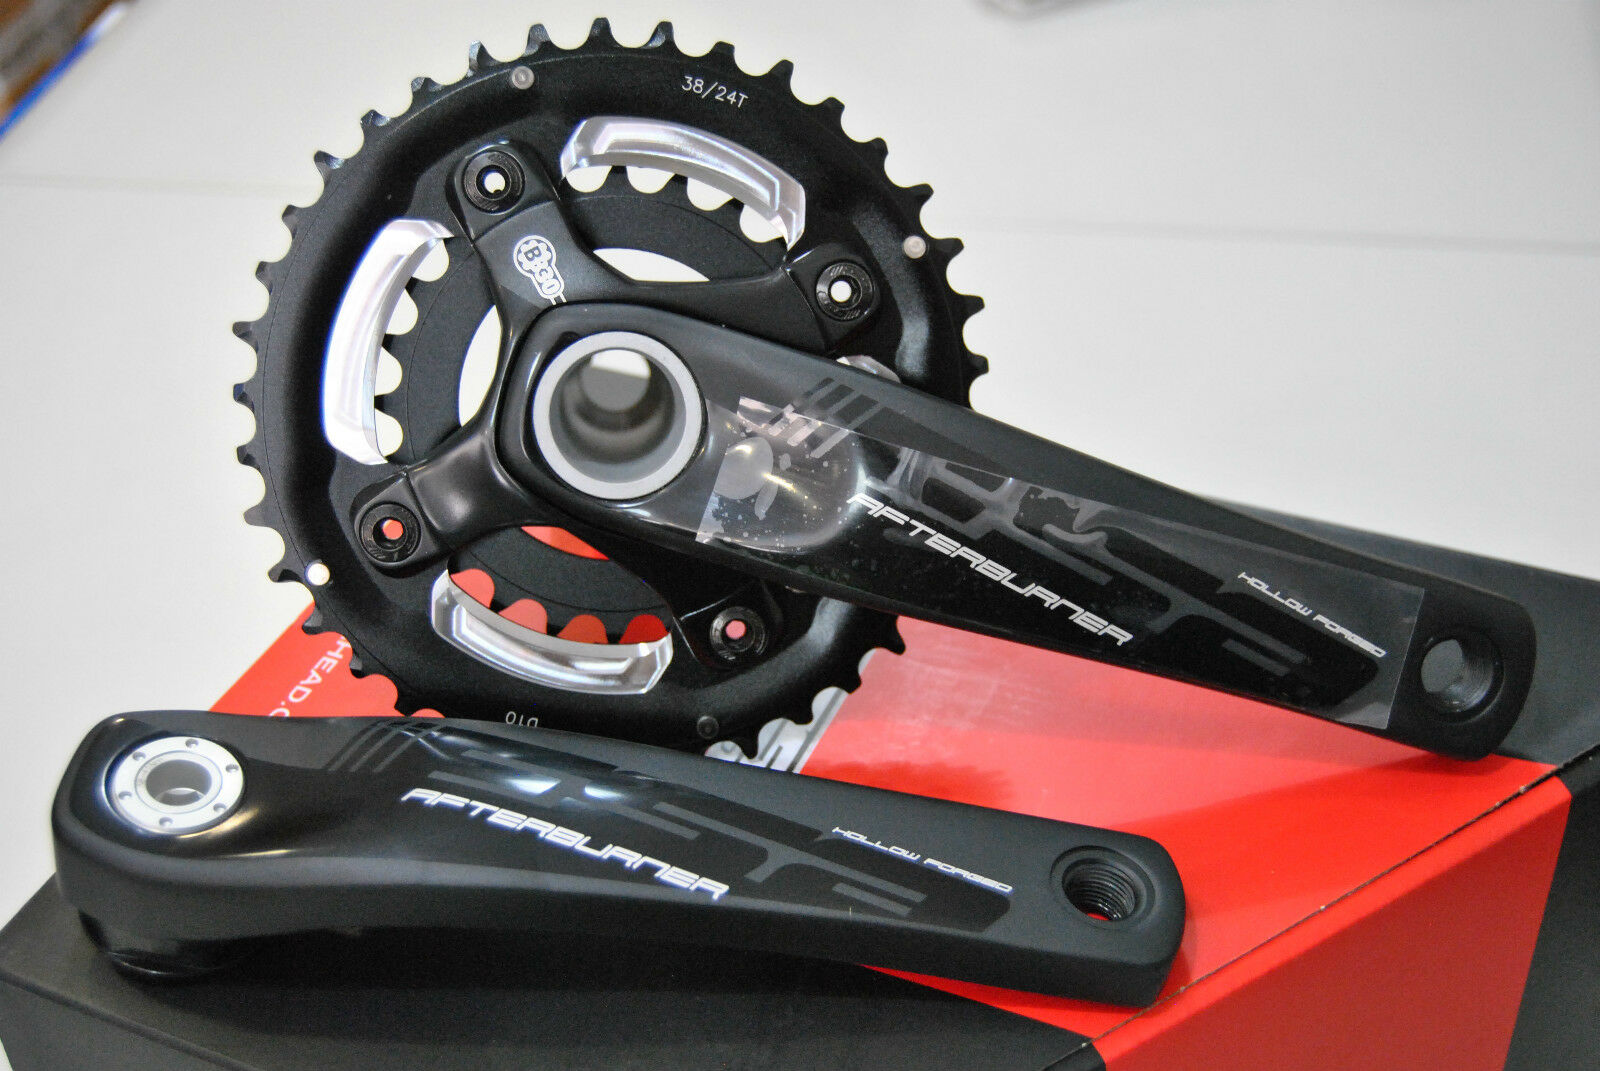 CRANKSET MTB Fsa AFTERBURNER BB30 38 24T 175mm CRANKSET FSA afterburner 38 24